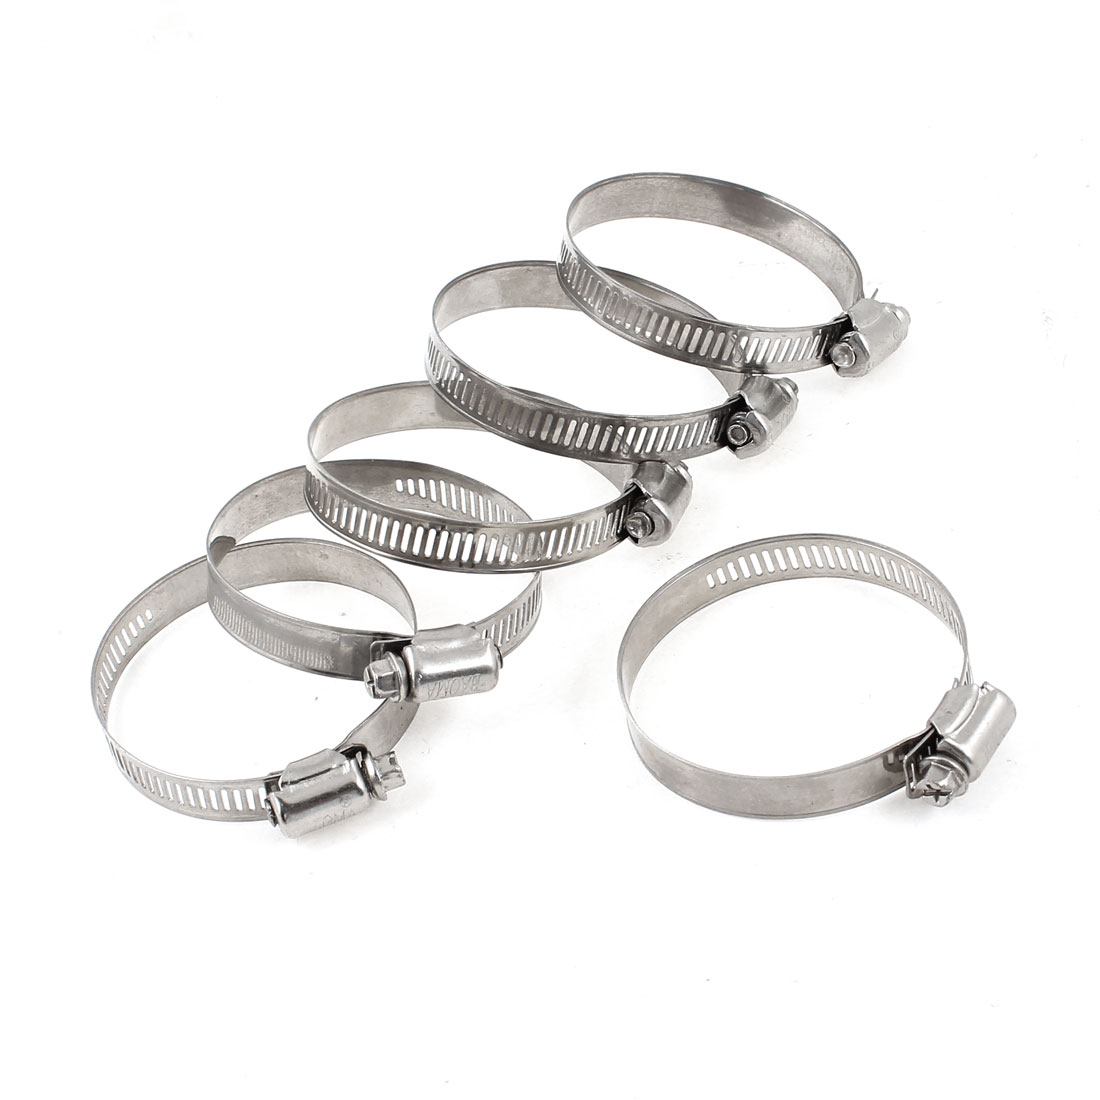 6pcs Adjustable 44-67mm Worm Drive Hose Clamps Clips Silver Tone